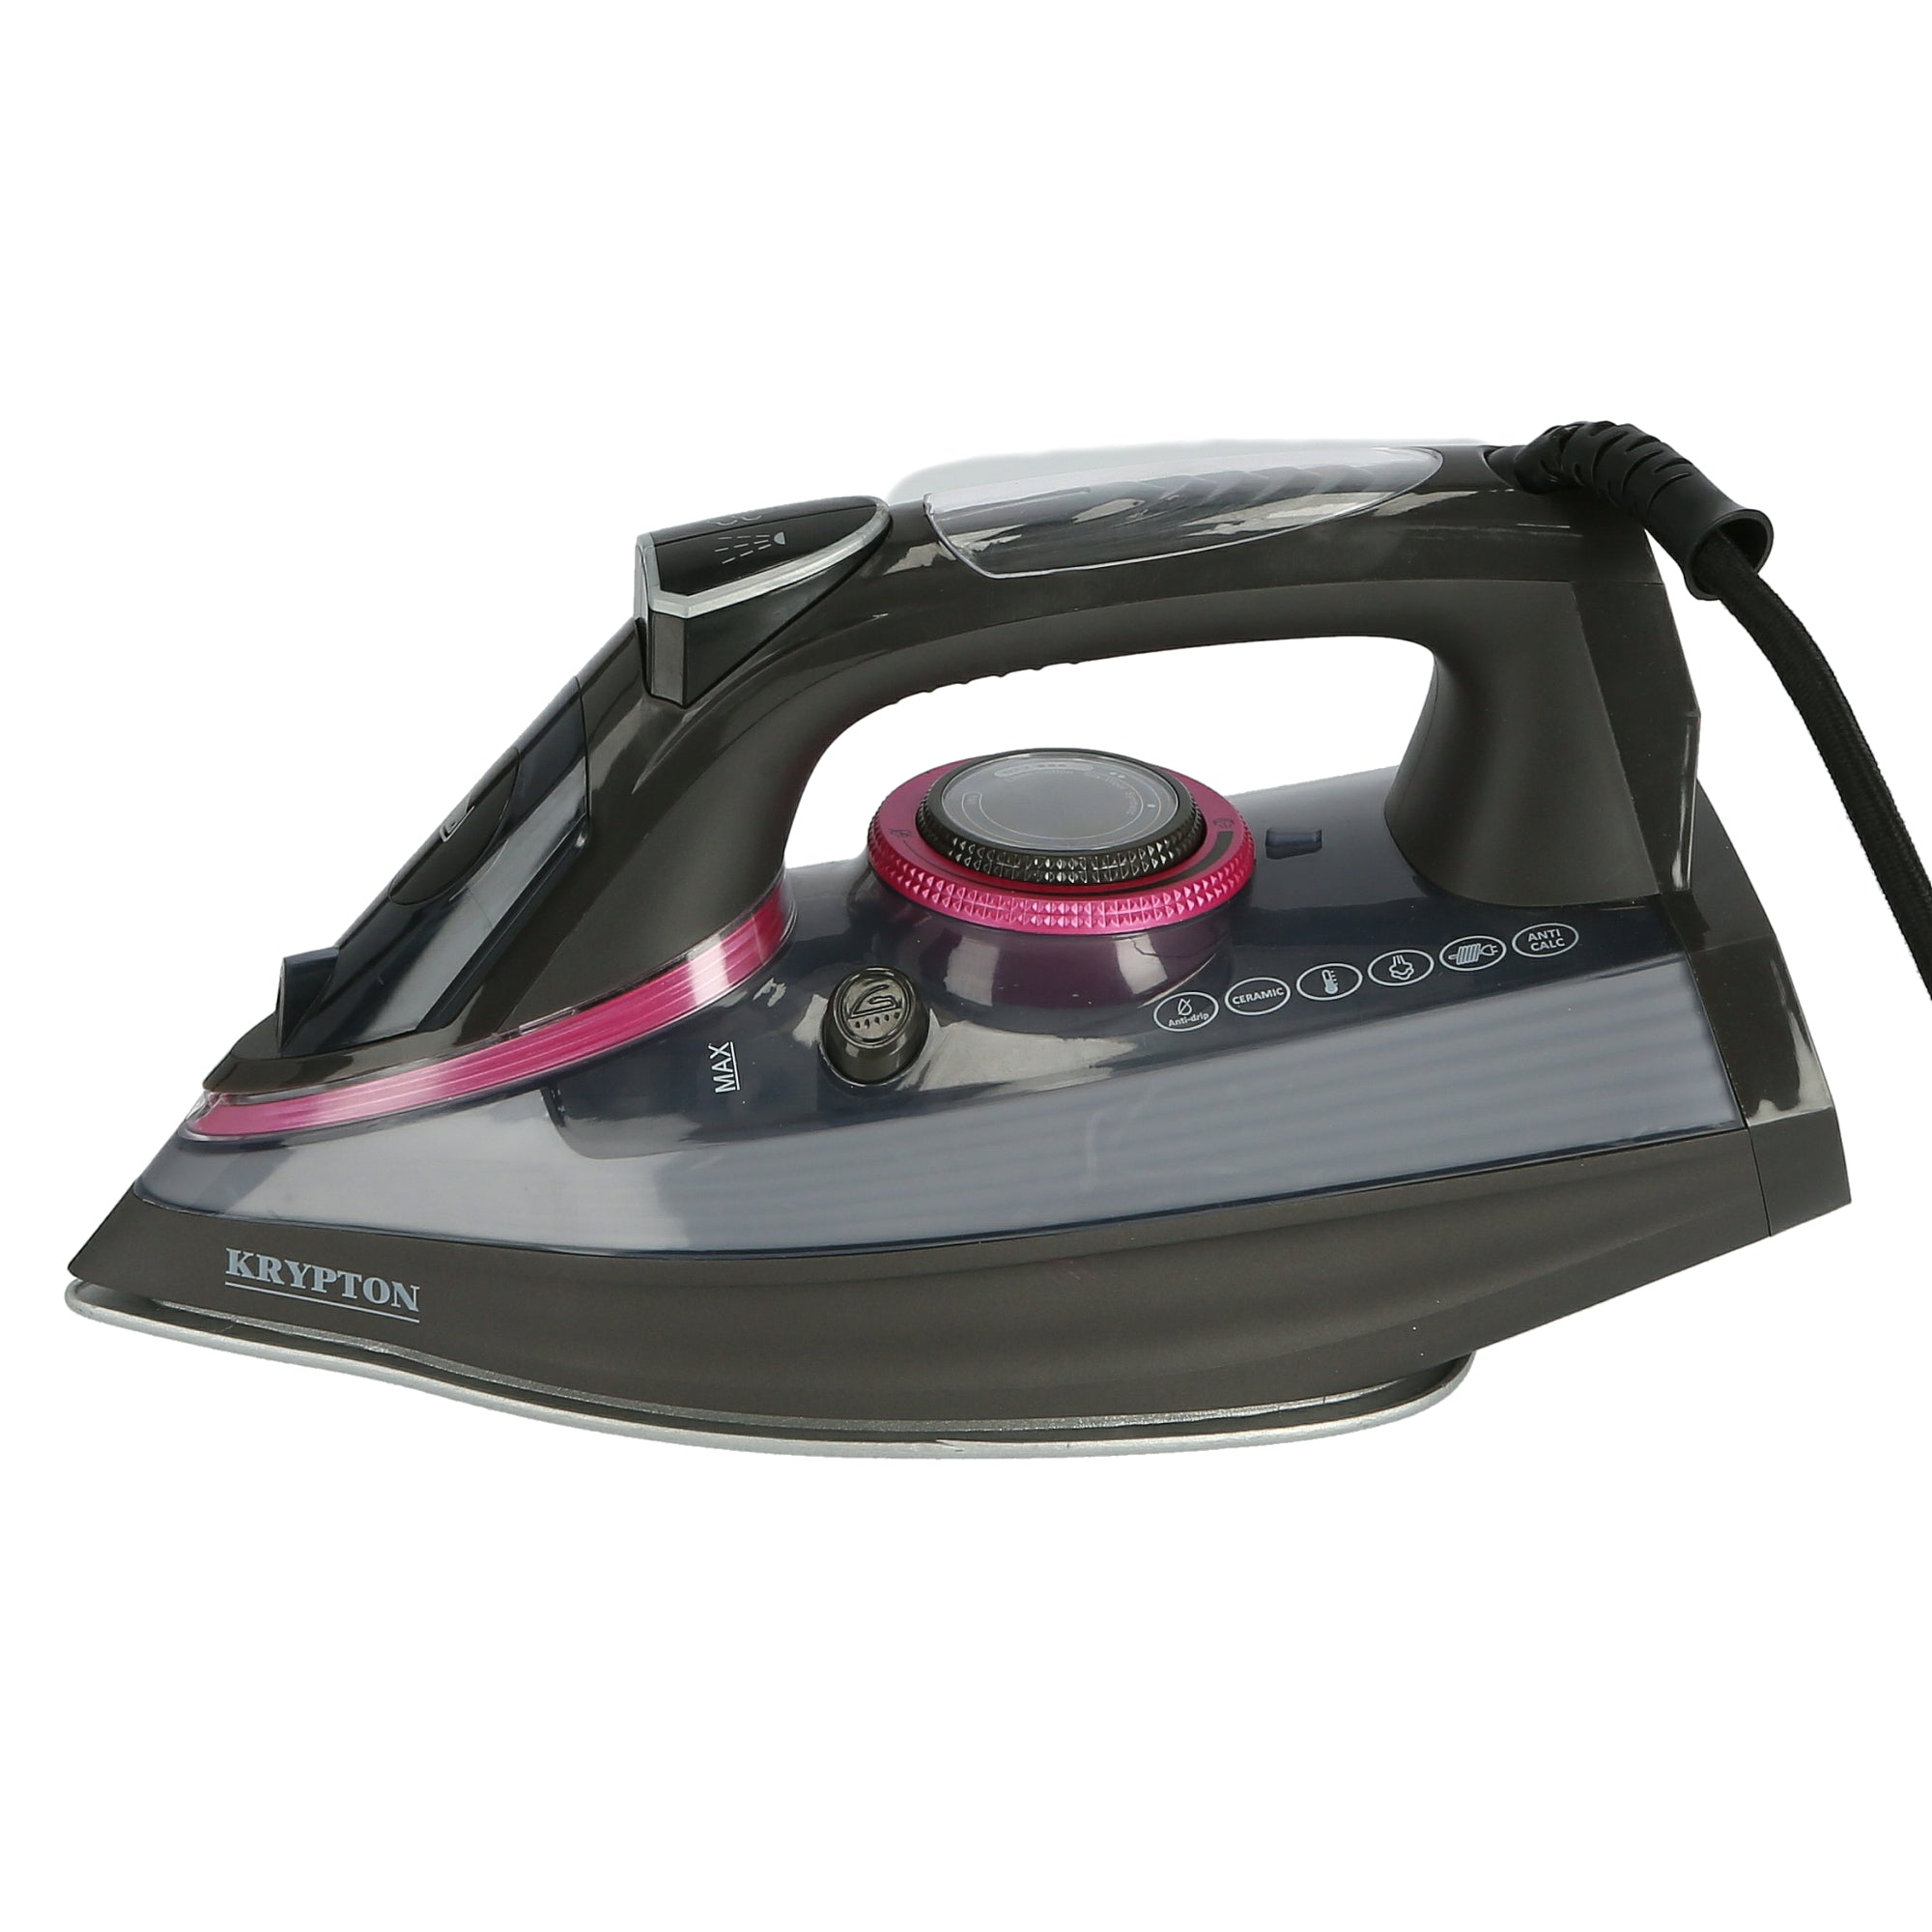 2400W Non-Stick Soleplate Steam Iron, Powerful Wet & Dry Steam Iron with Self Clean Function